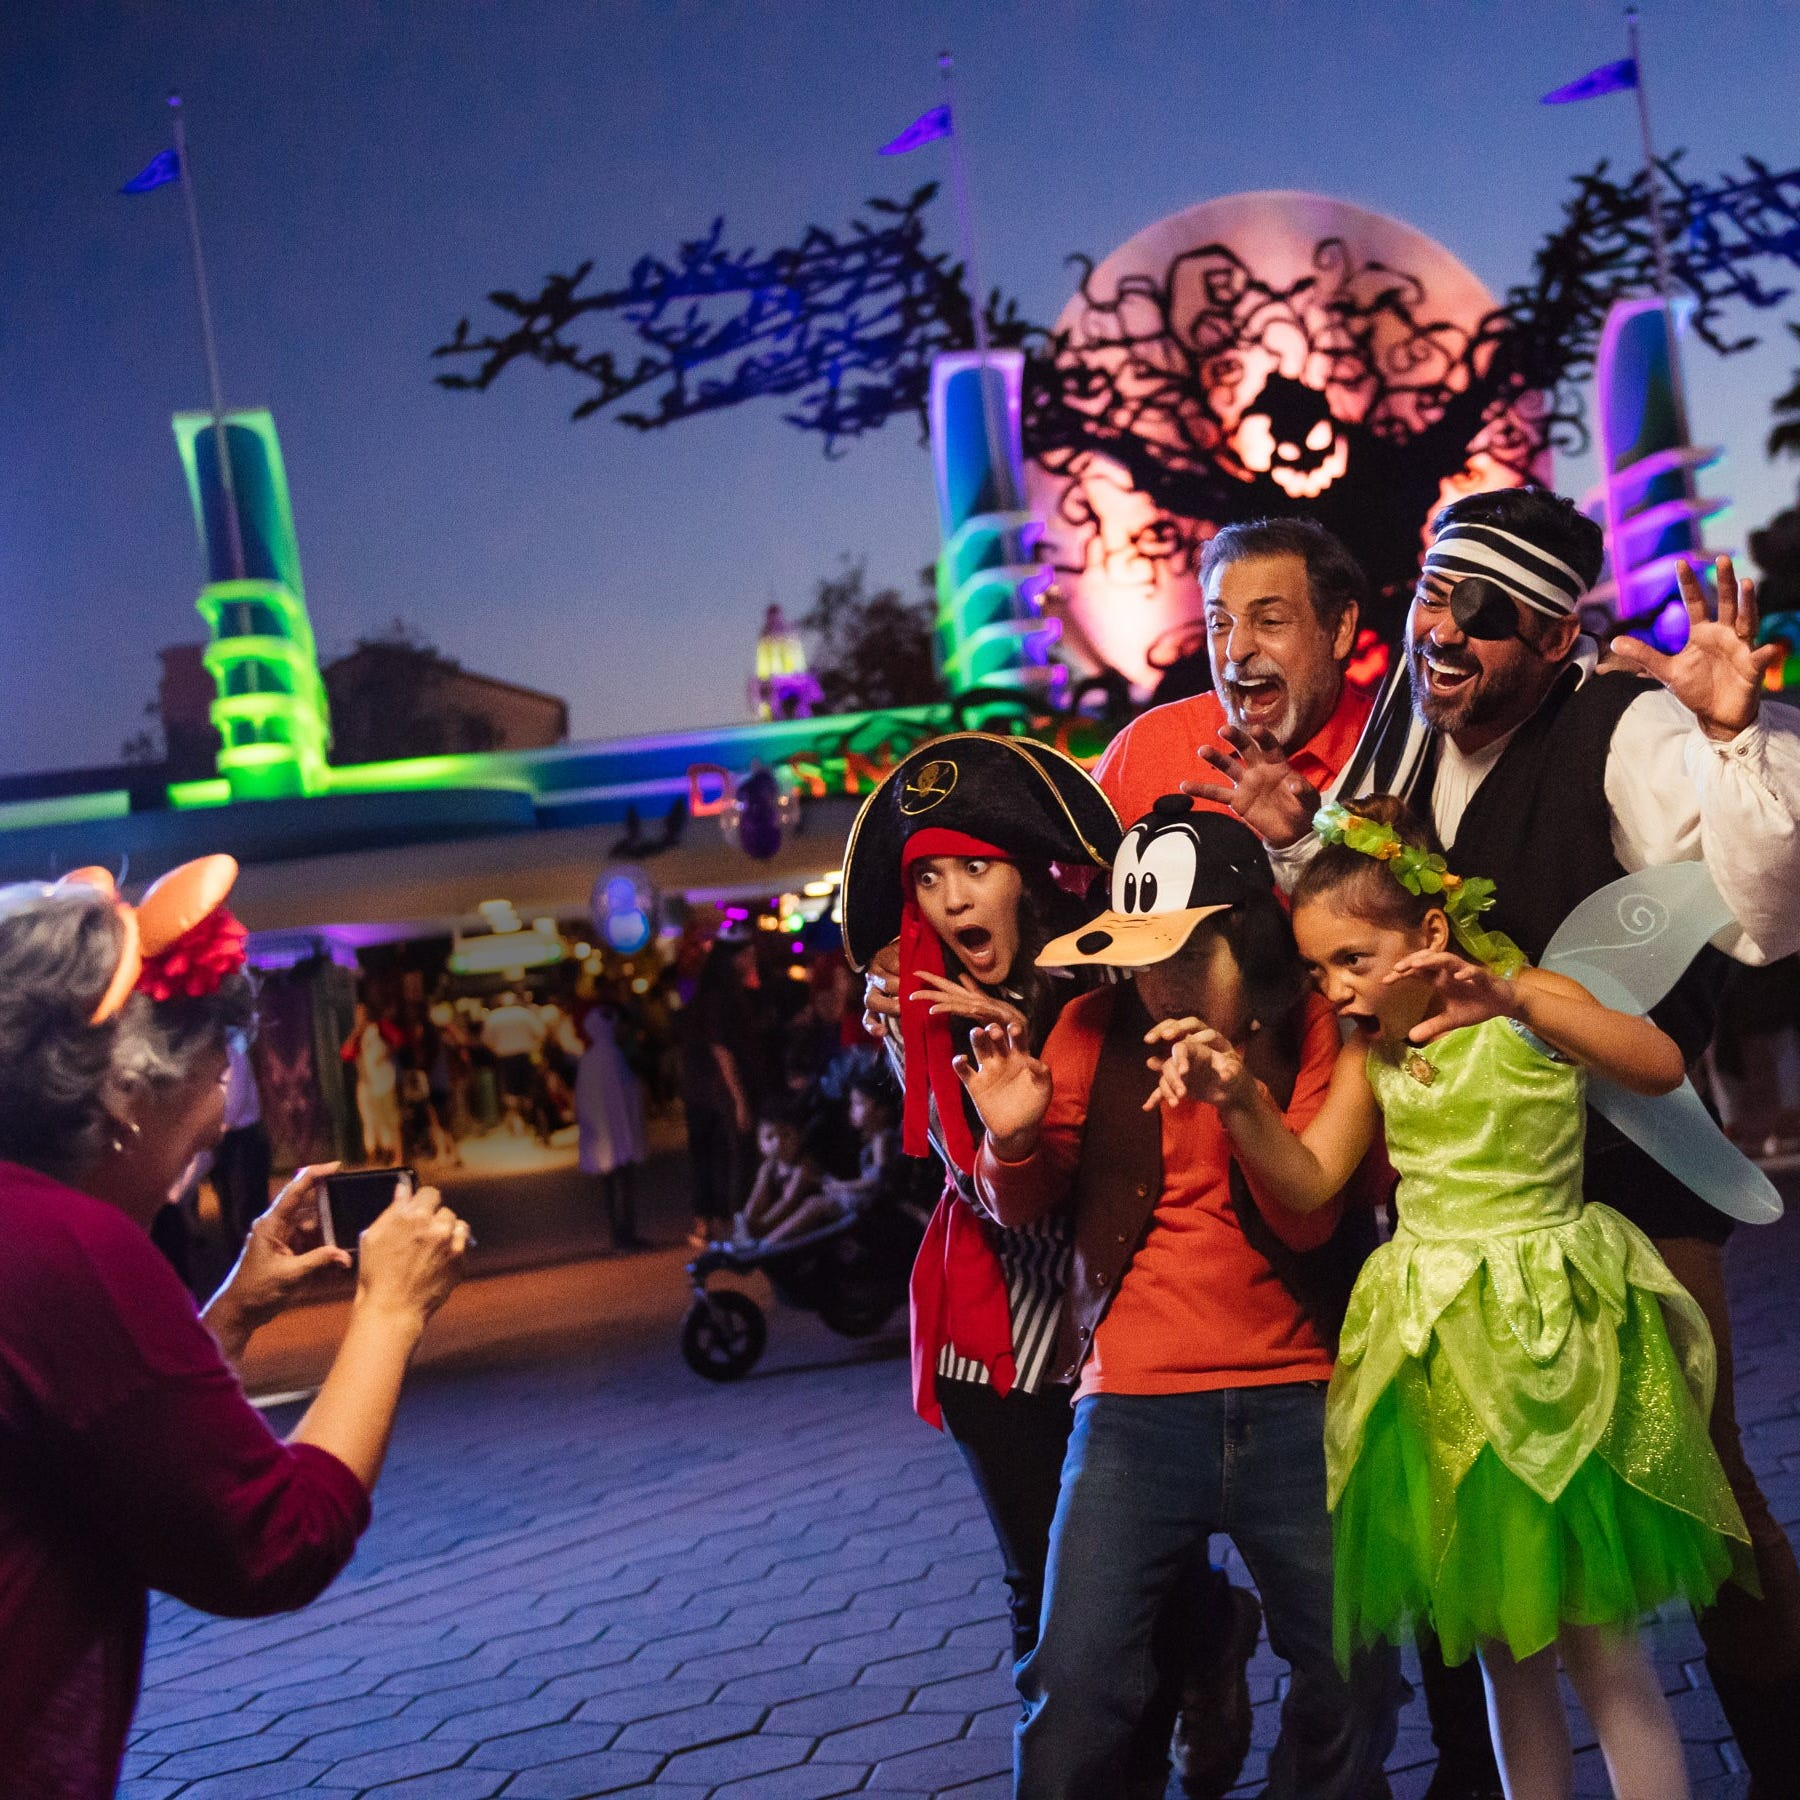 Disneyland Halloween 2019: The party moves to California Adventure